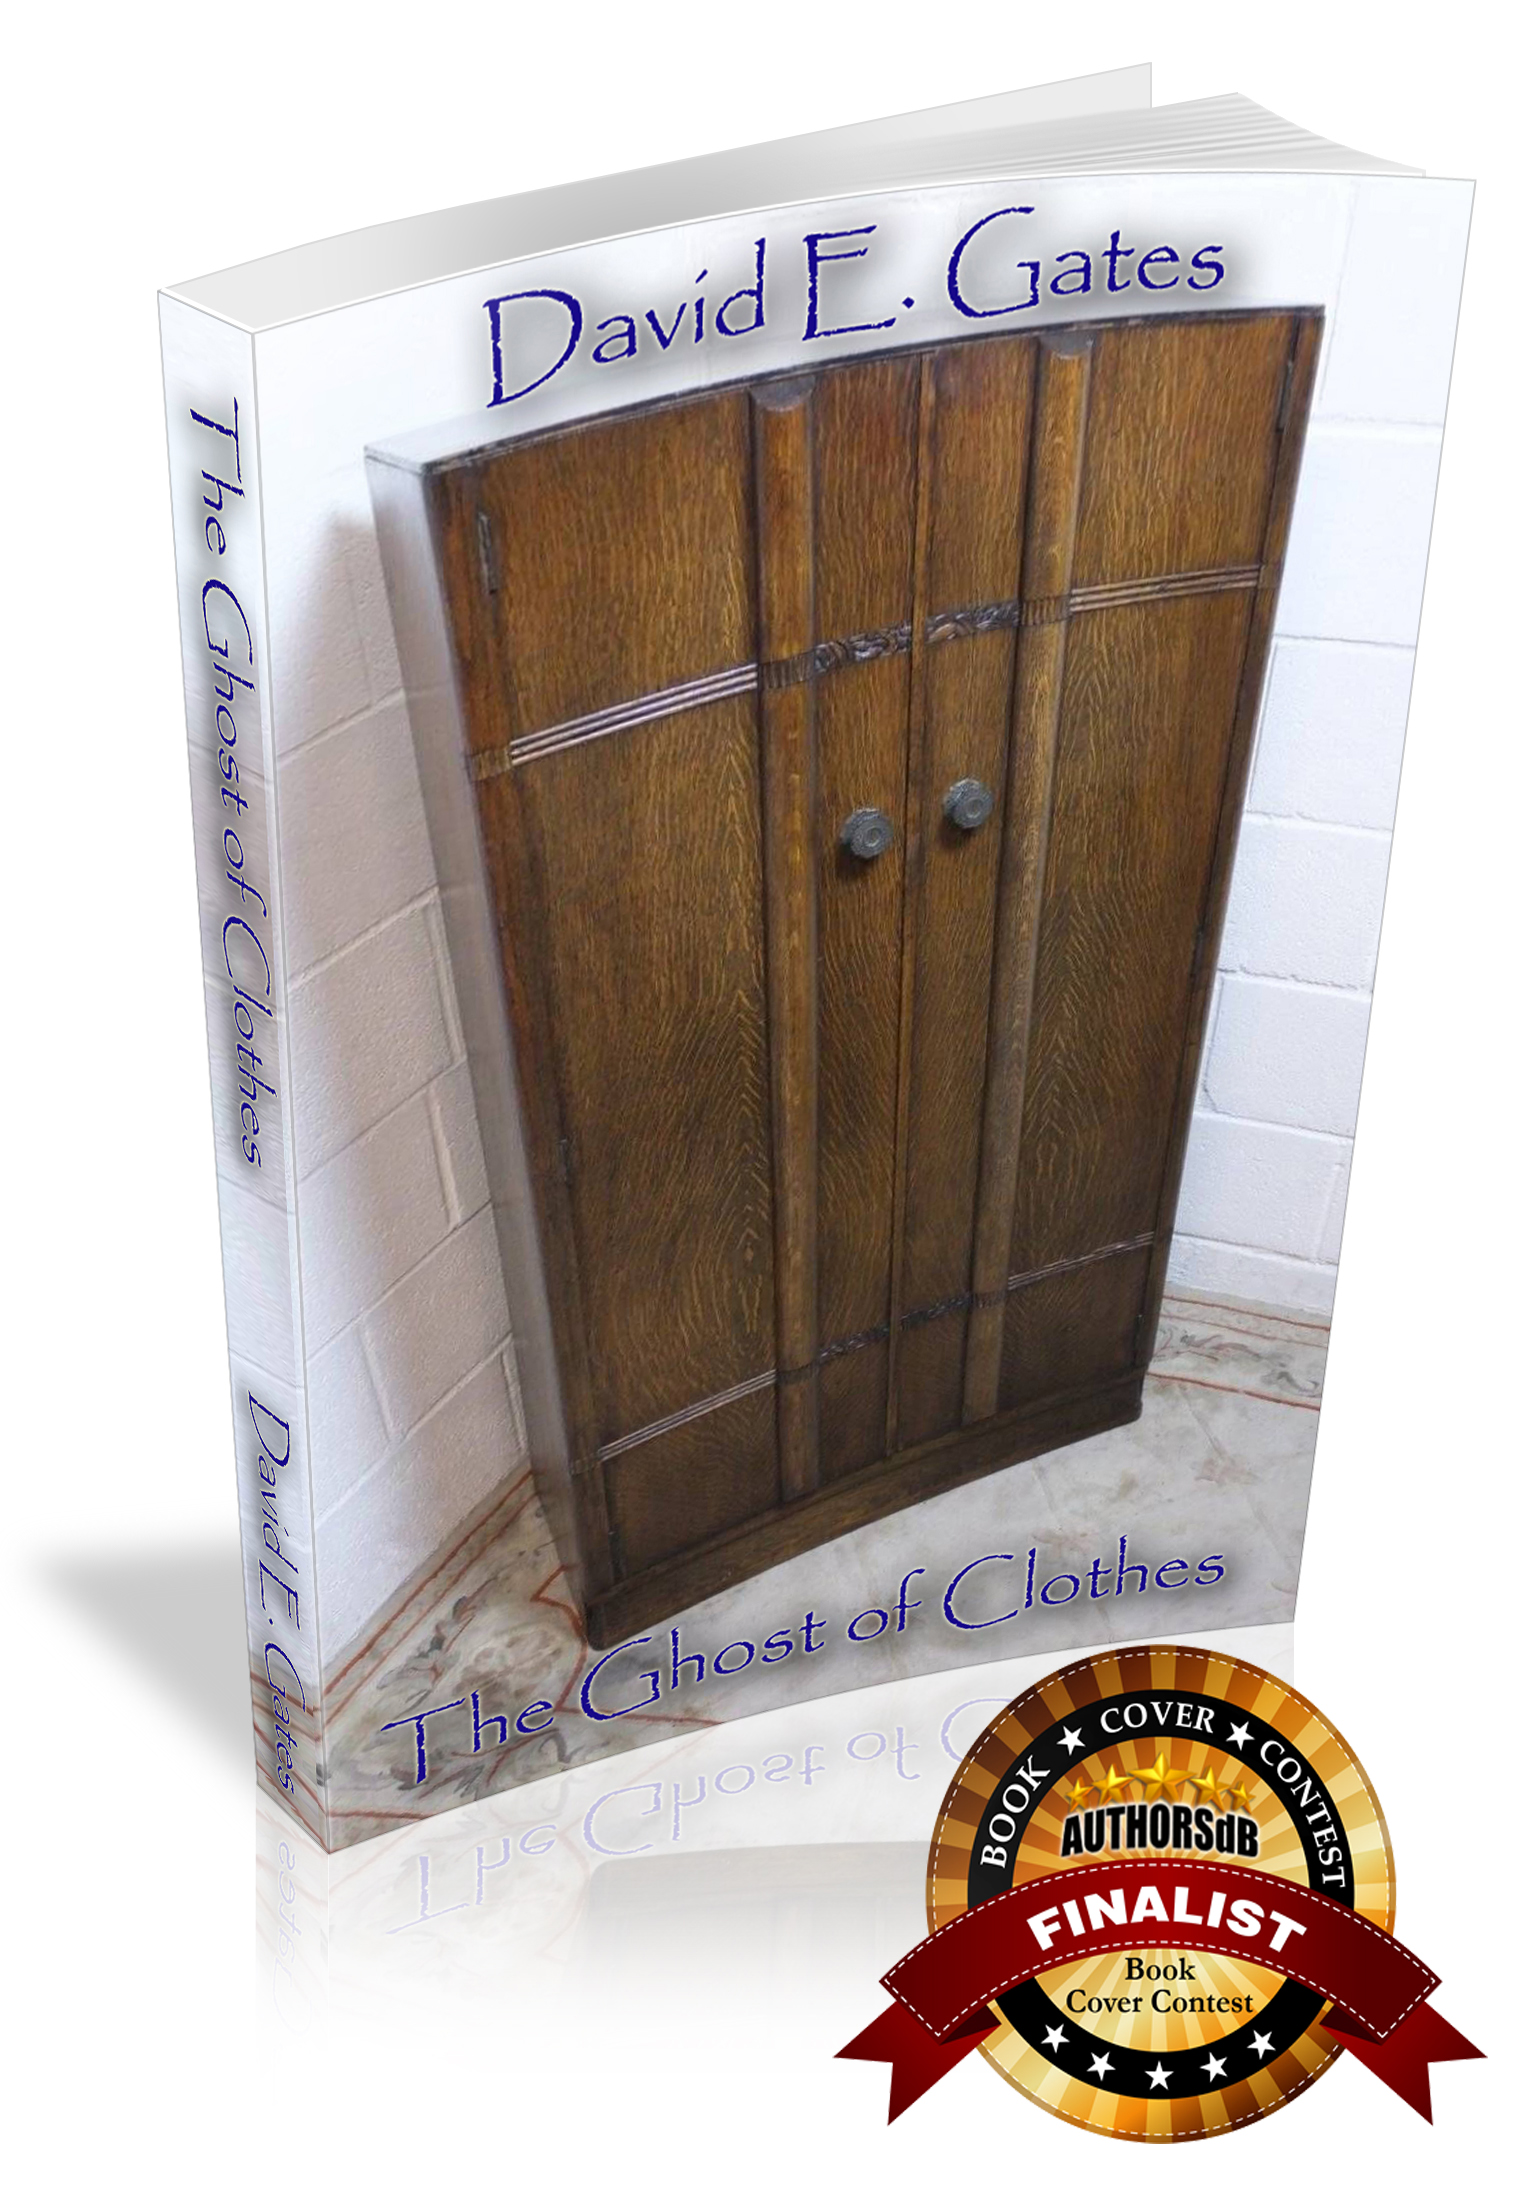 paperback-3d-cover-with-finalist-award